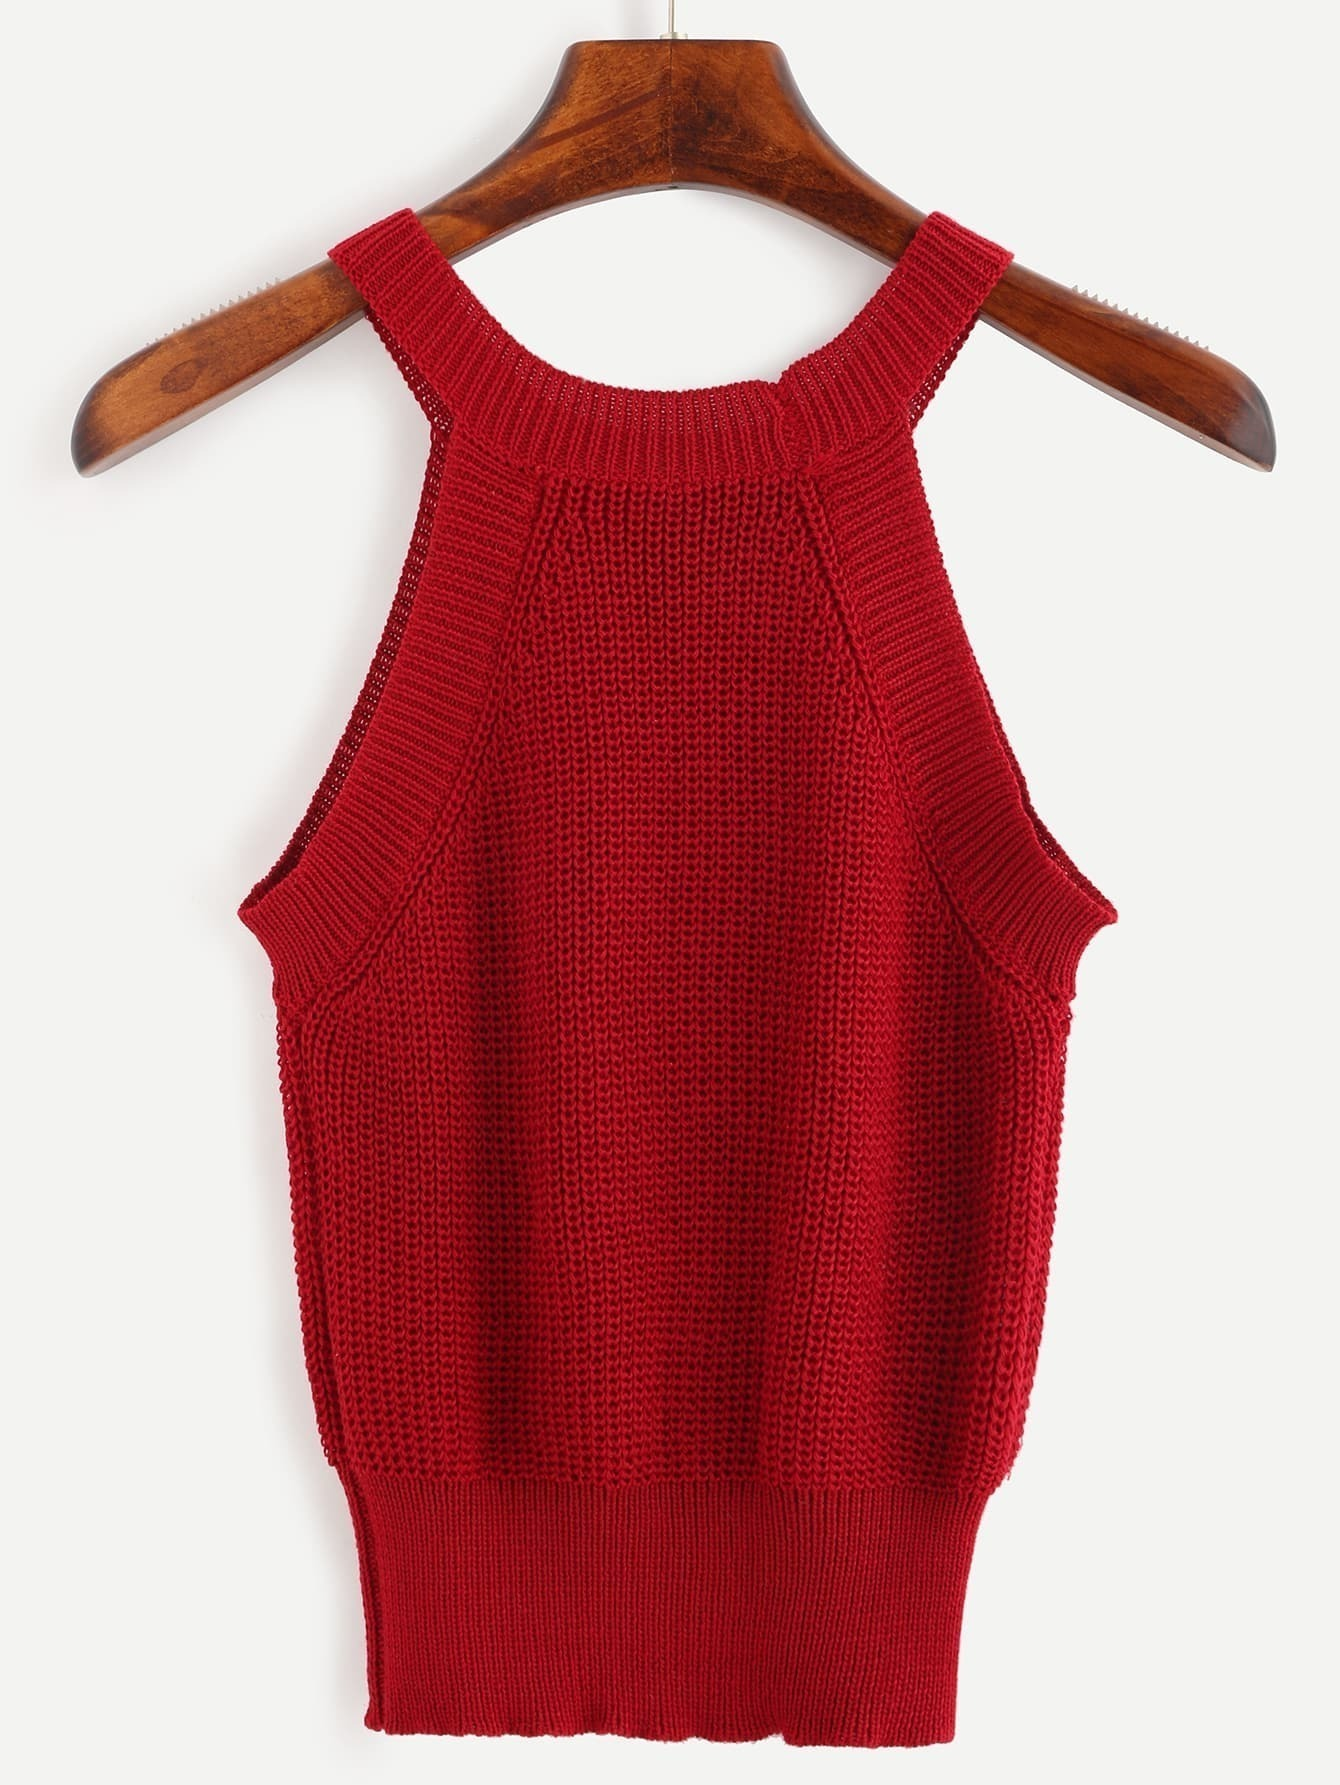 Find Halter neck from the Womens department at Debenhams. Shop a wide range of Tops products and more at our online shop today. Multi striped tie side halter neck top Save. Was £ Now £ Miss Selfridge Halterneck tassel blouse Mid red halter split back shell top Save. Was £ Now £ Amalie & Amber Black crochet.